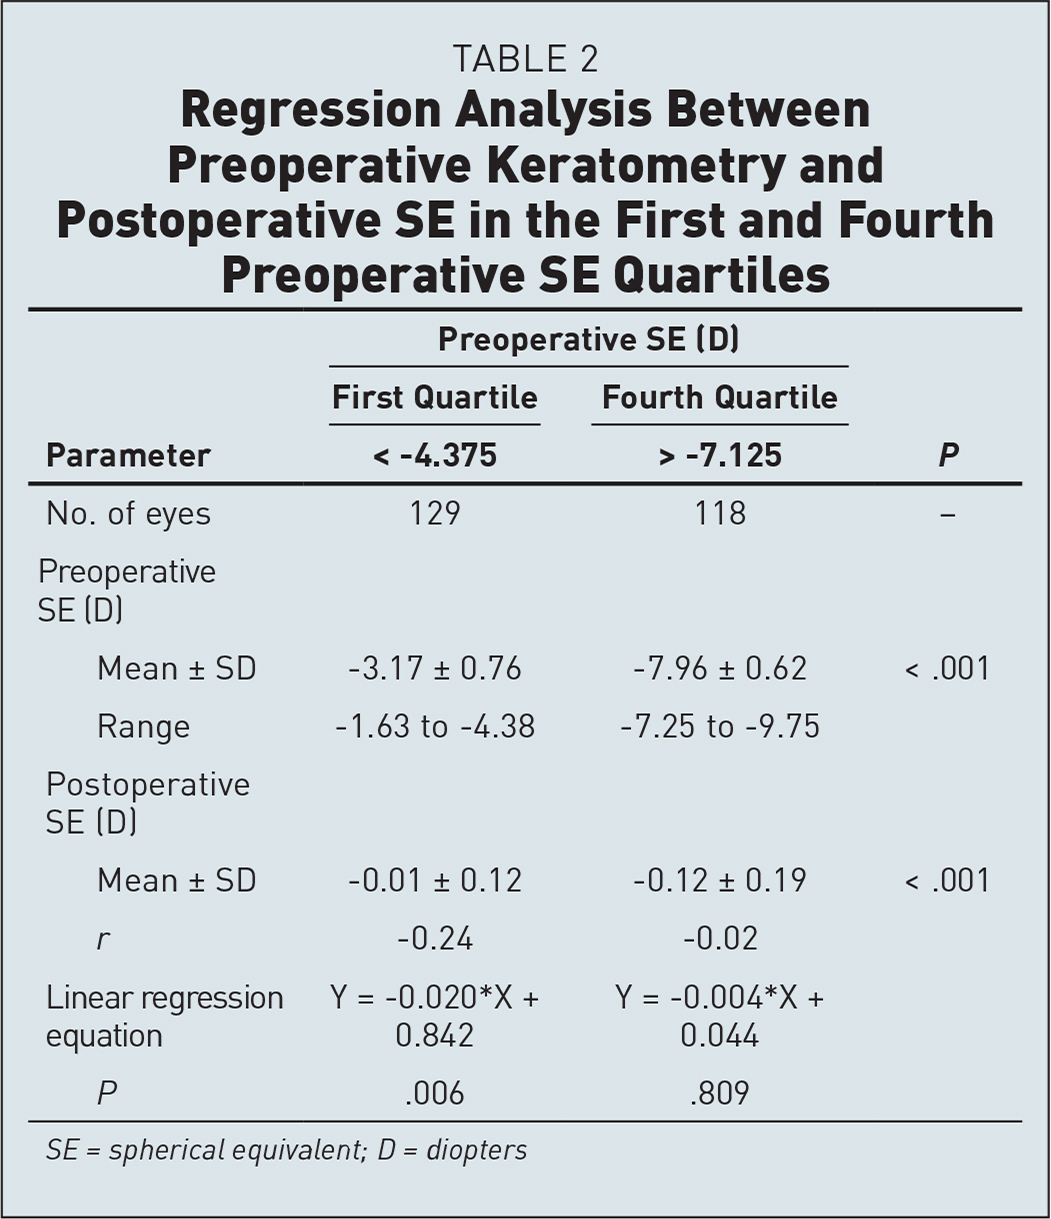 Regression Analysis Between Preoperative Keratometry and Postoperative SE in the First and Fourth Preoperative SE Quartiles